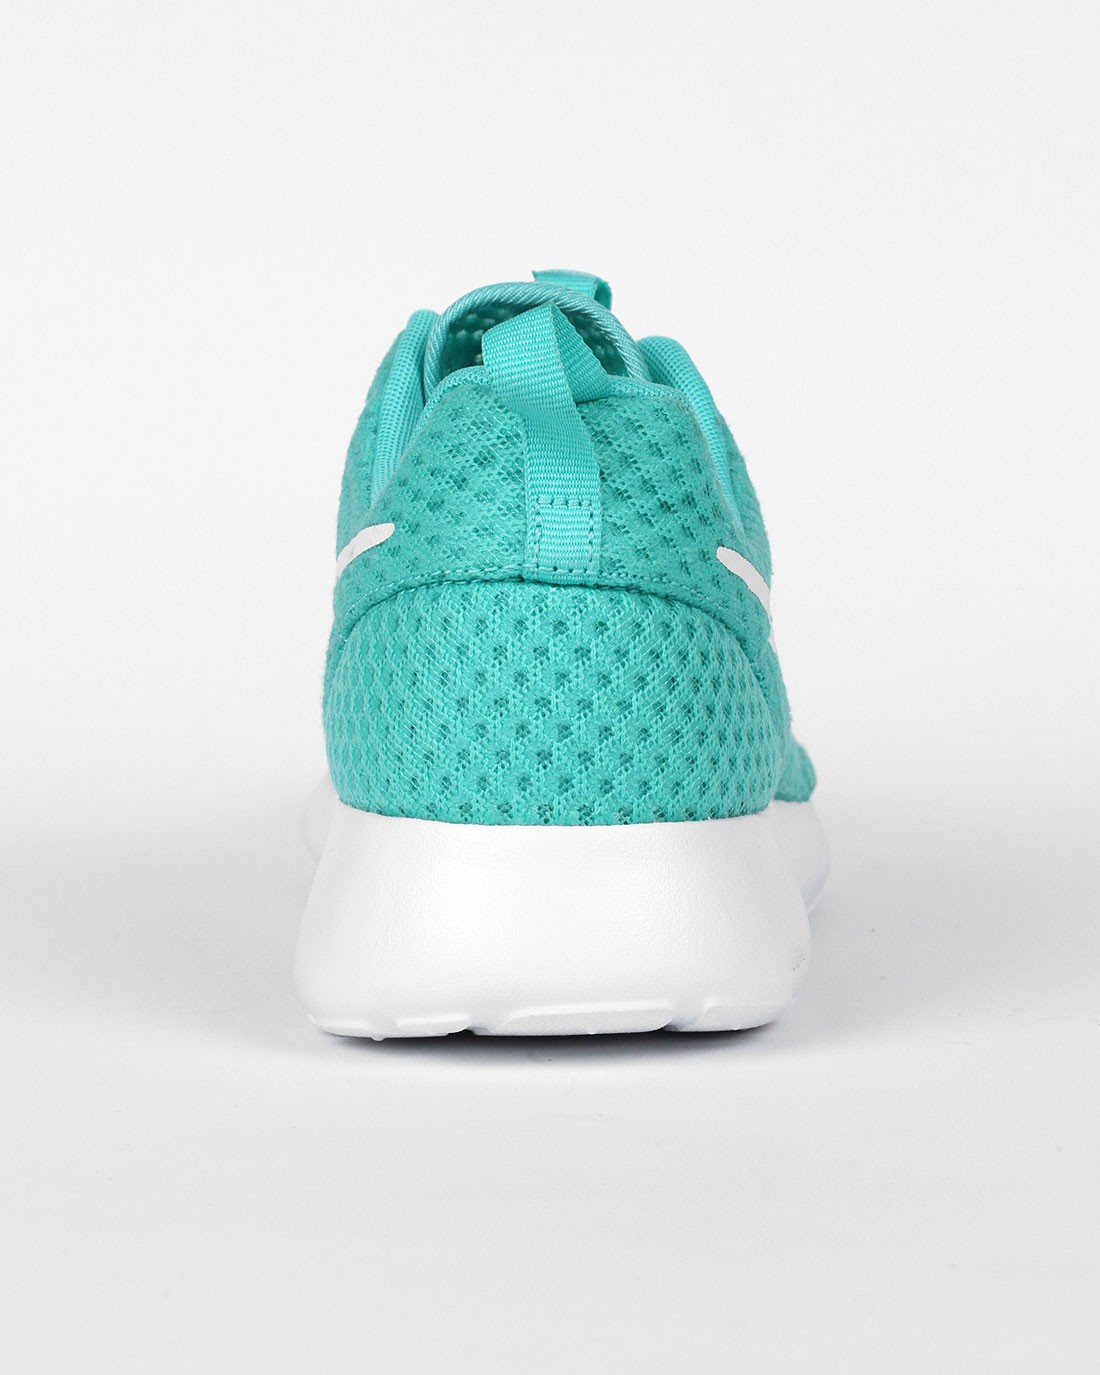 Nike Roshe One BR (Breeze) Calypso Chaussures Pour Femme Blanche Bleu-Vert 718552-410